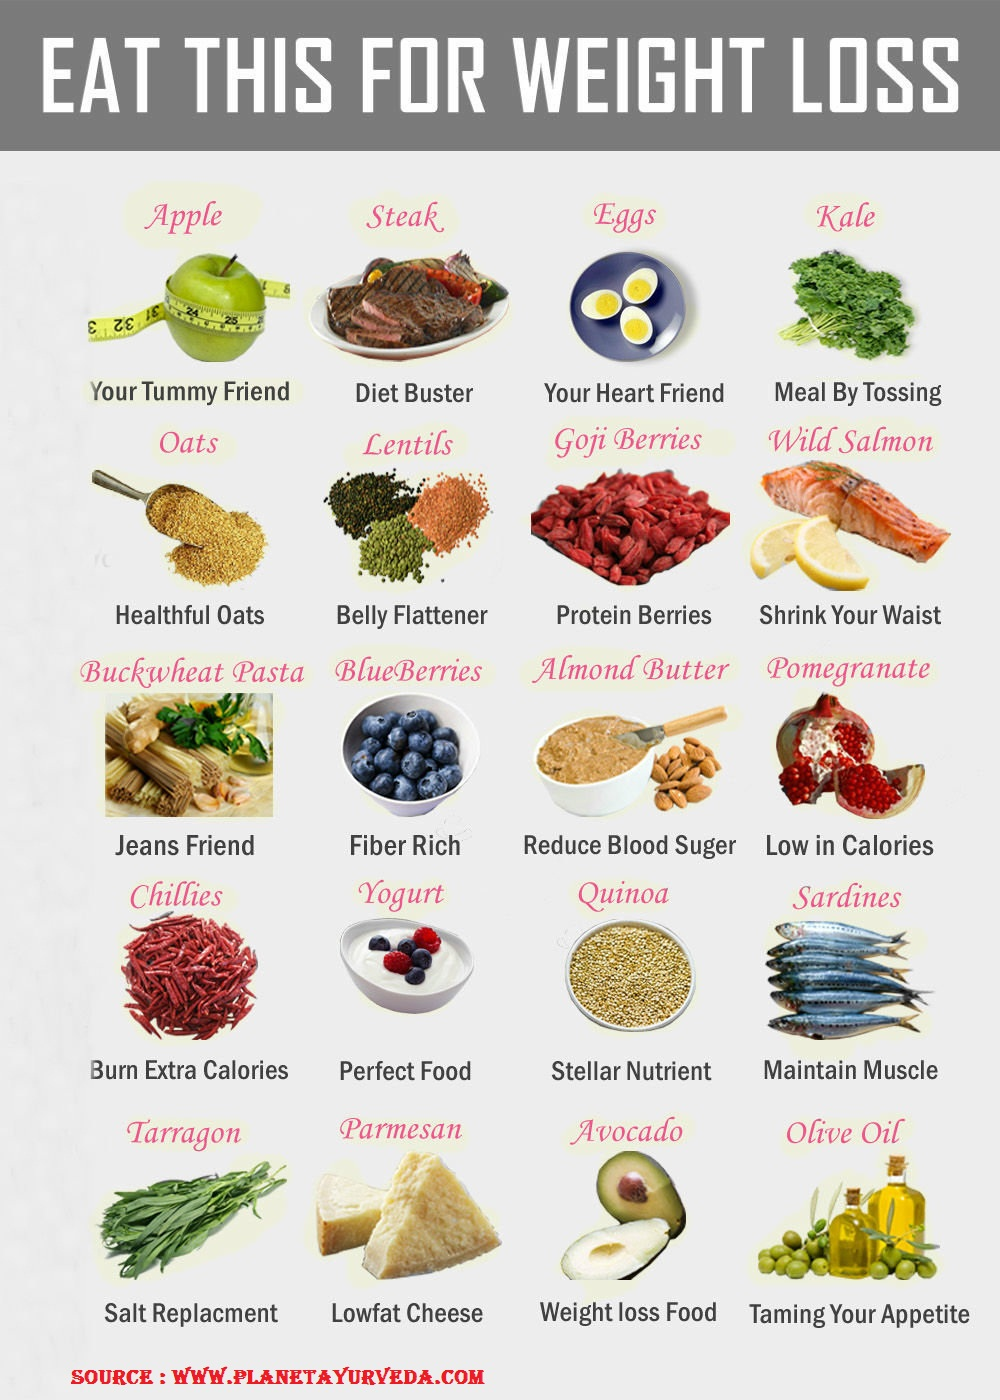 Foods You Should Eat To Fire Up Weight Loss Infographic